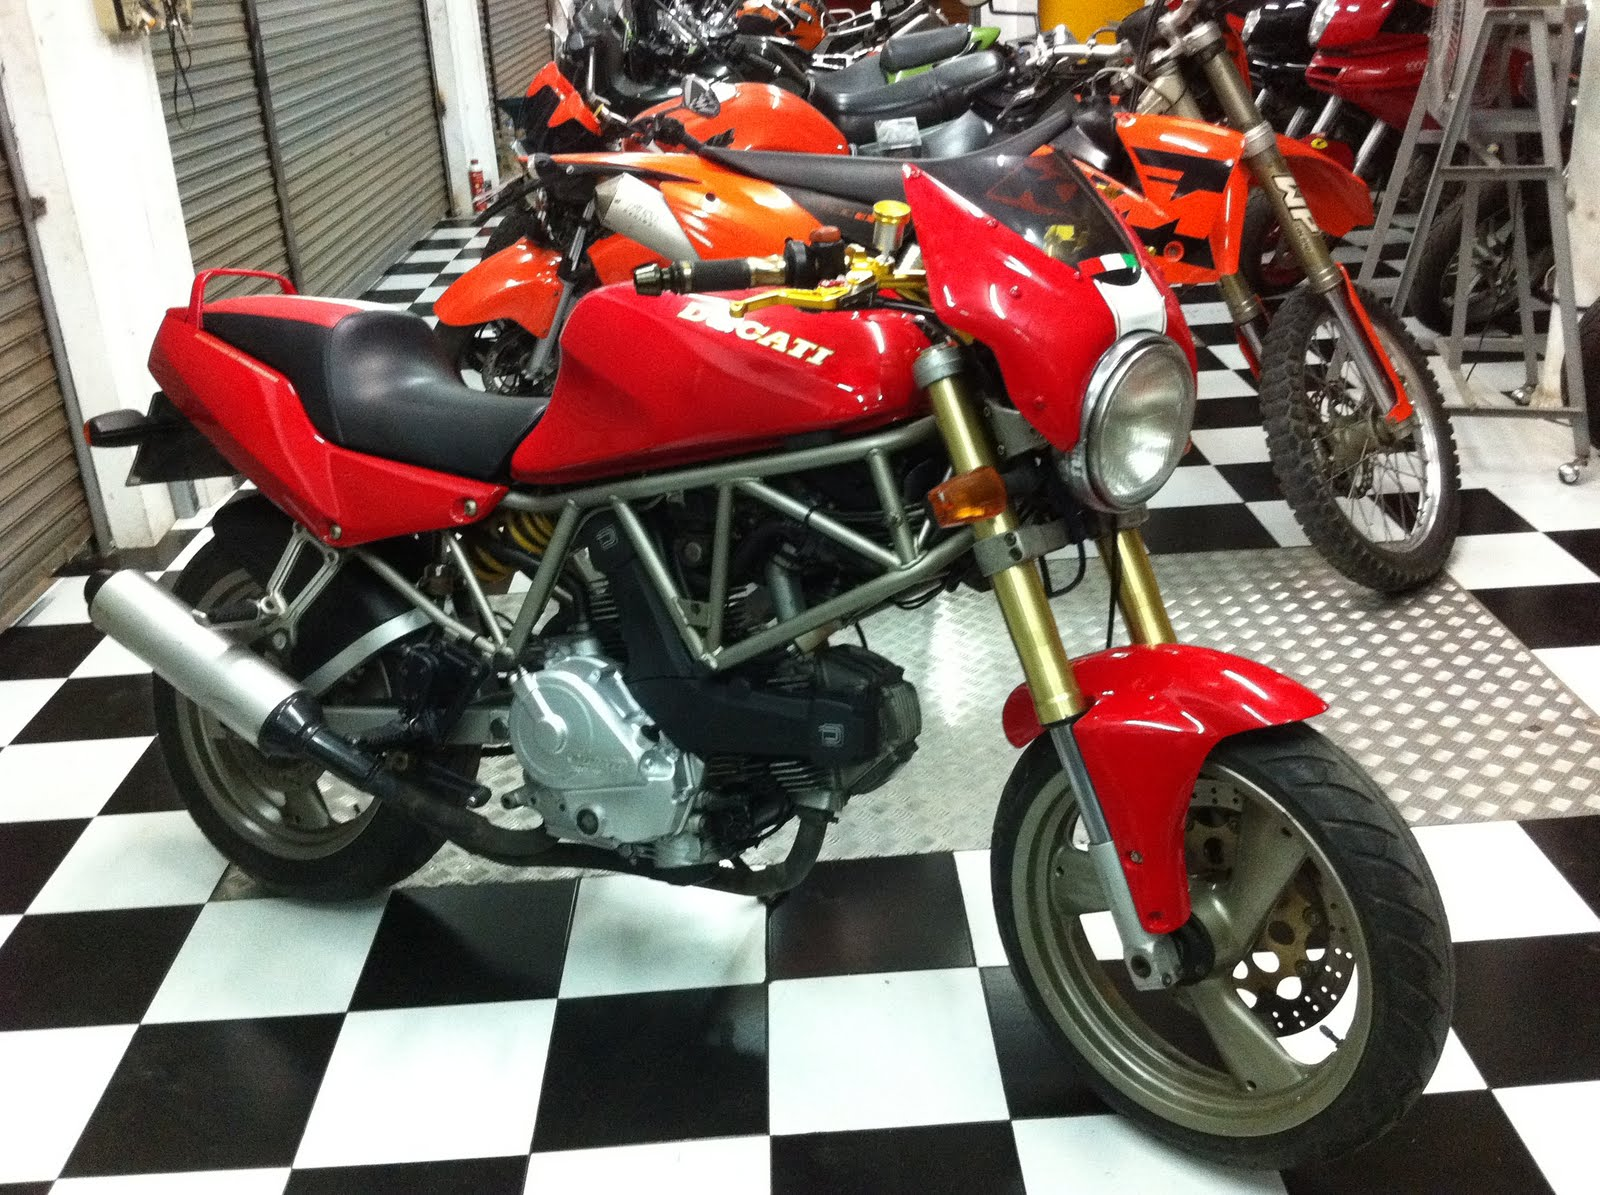 Big Bike For Sale Ducati 400 Ss Facelift Monster Ohm Cycles Samui